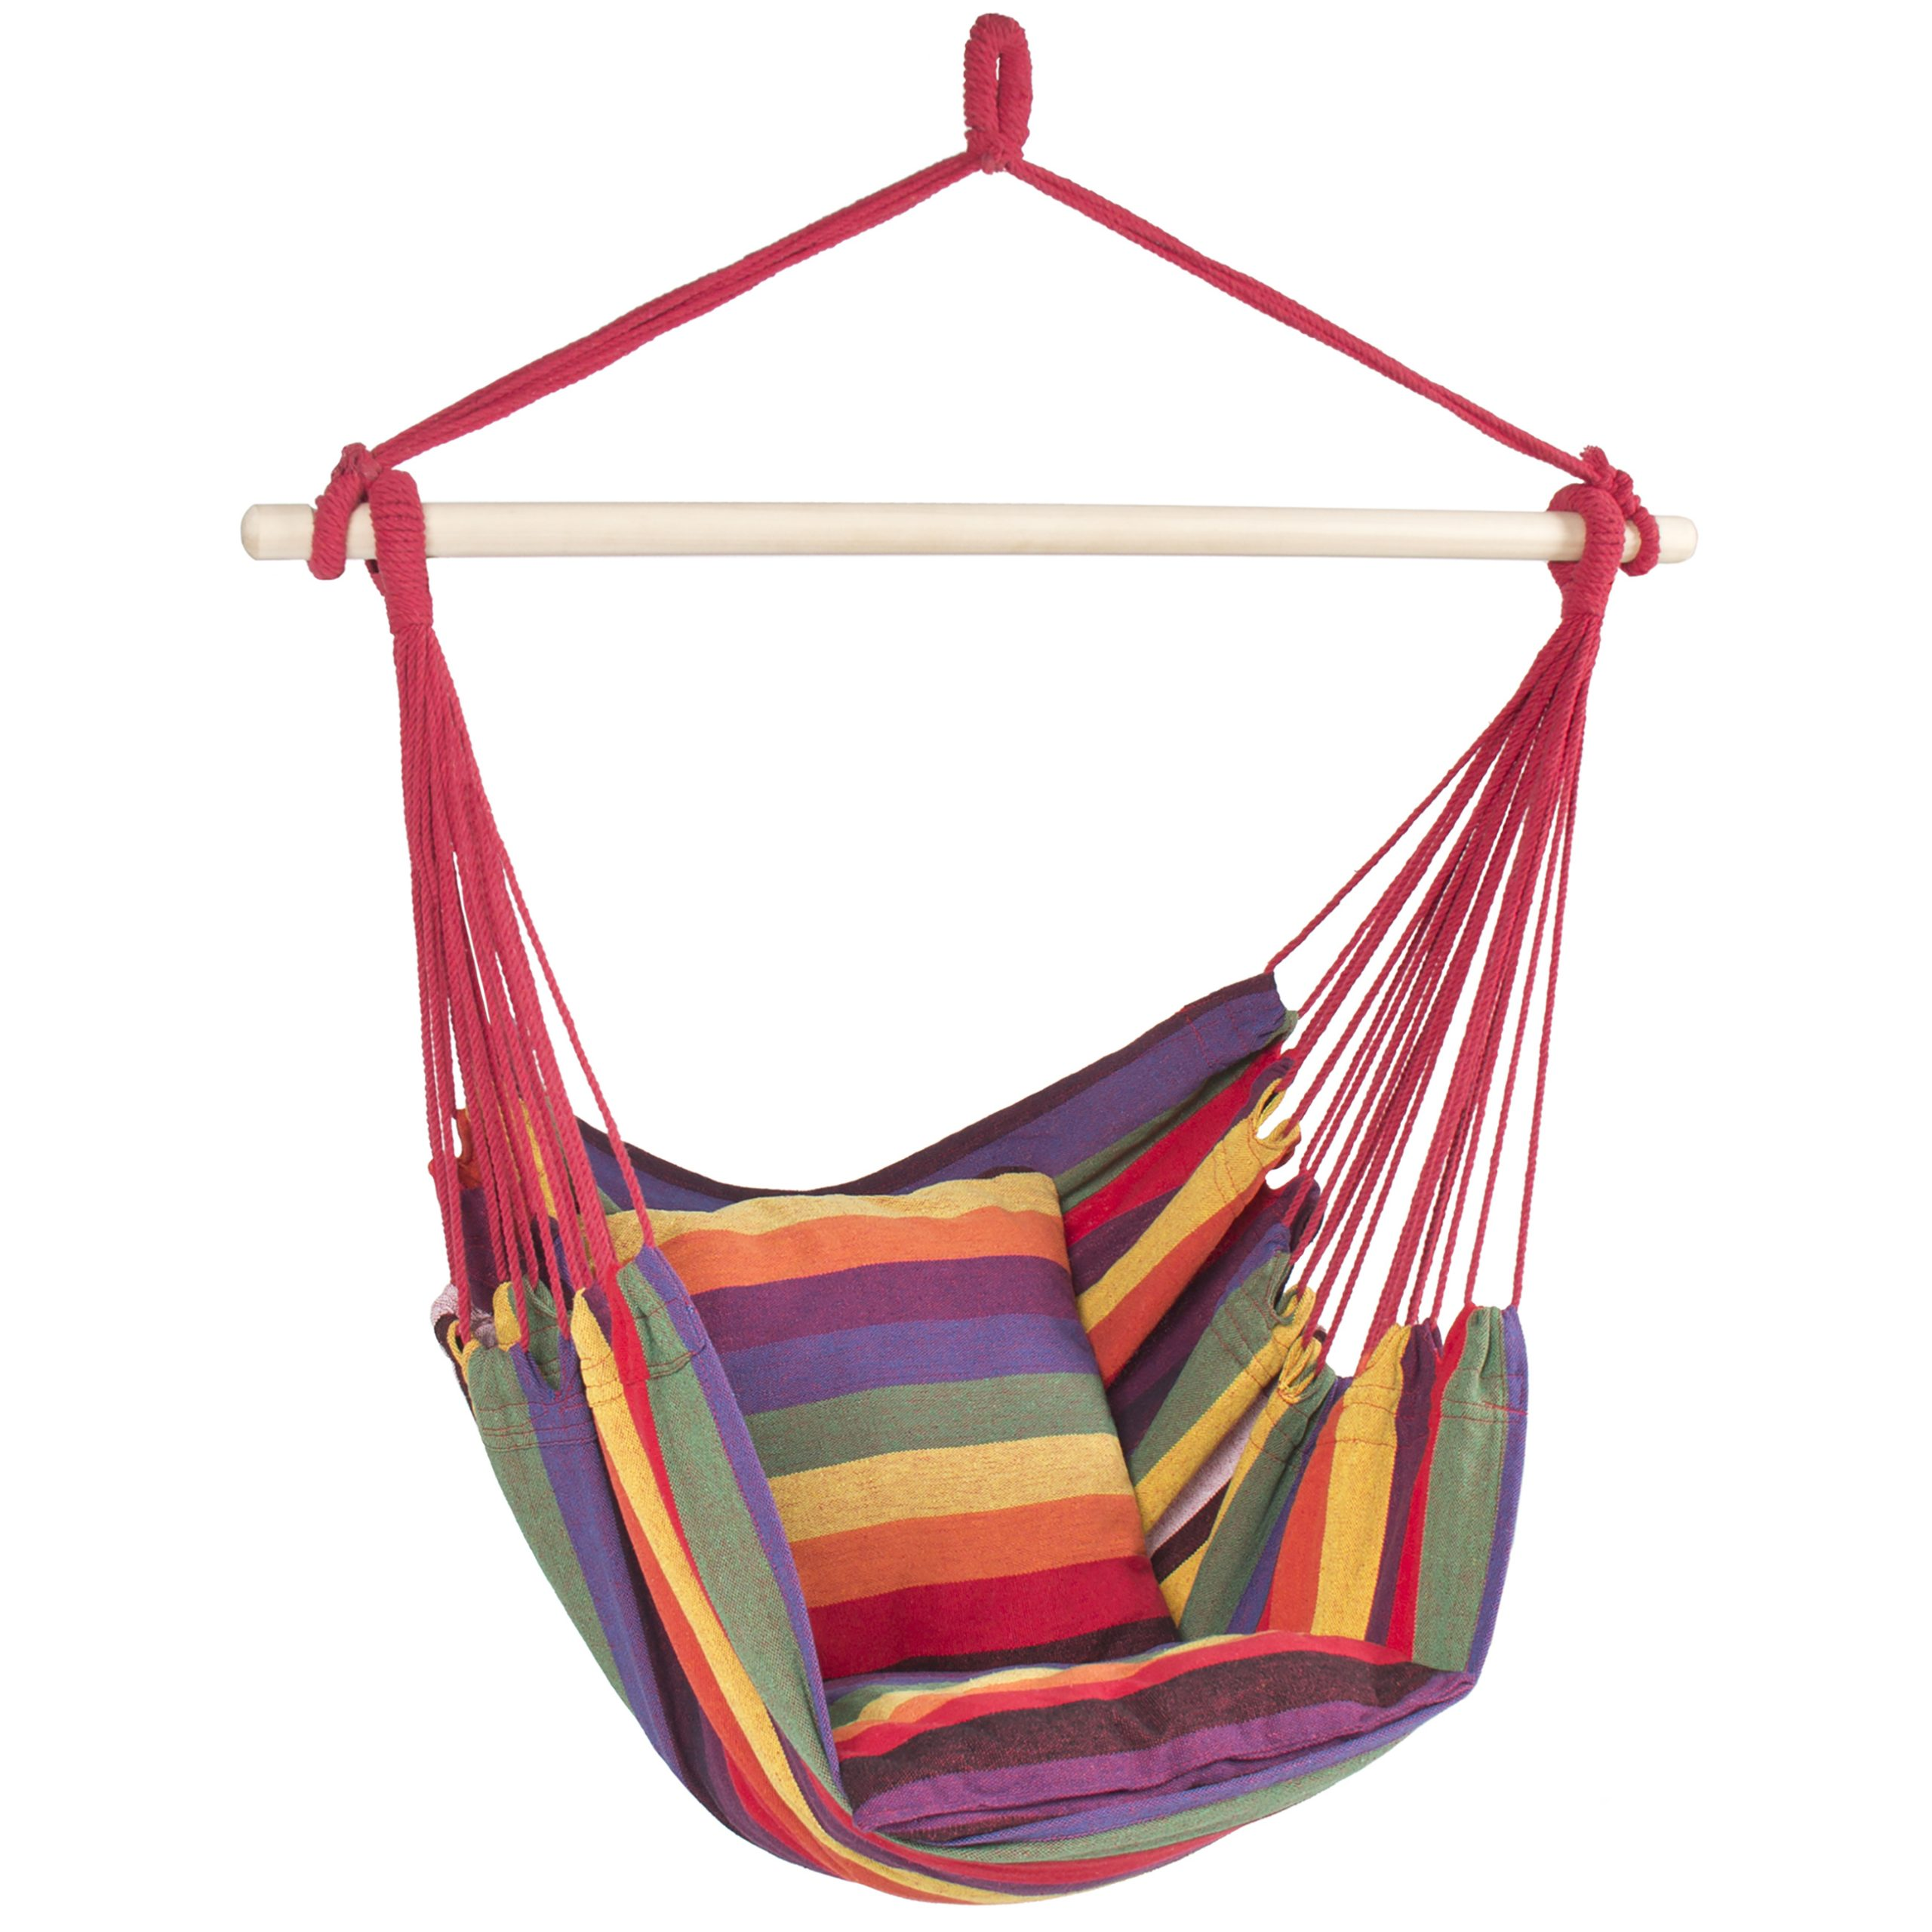 Most Recently Released Best Choice Products Portable Hanging Cotton Hammock Rope Chair Swing, Red Stripe – Walmart Inside Patio Hanging Porch Swings (View 14 of 25)